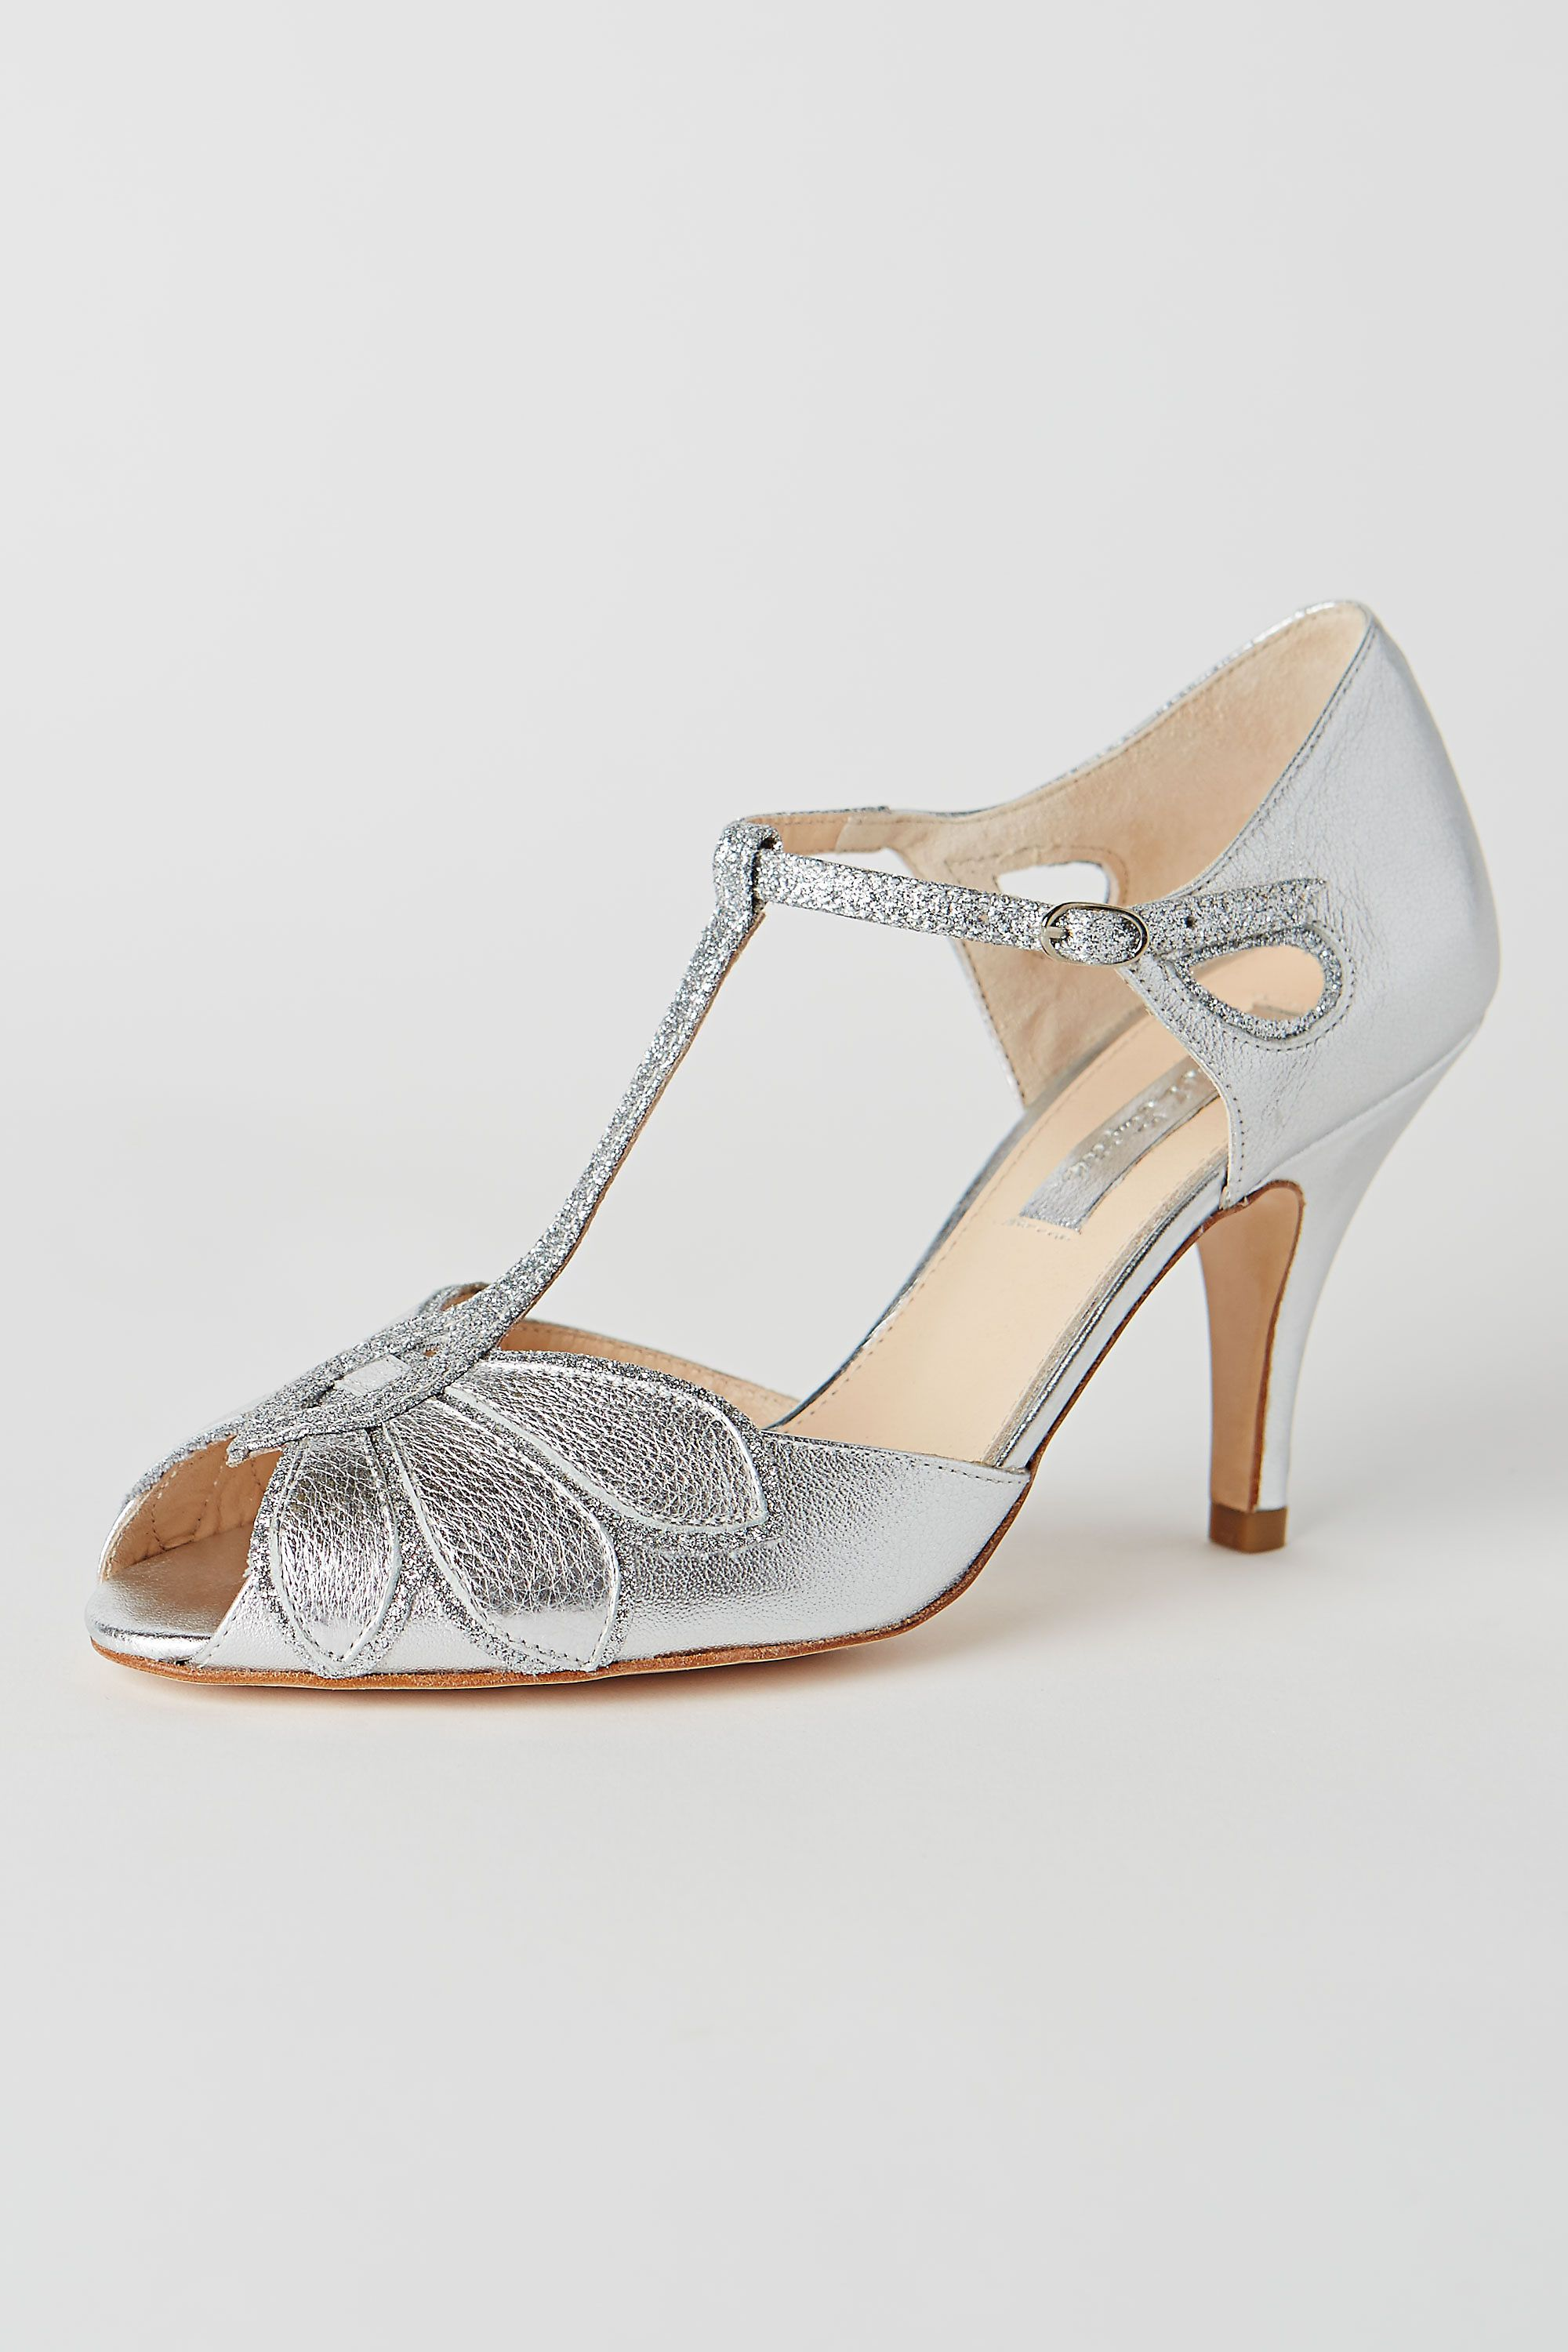 e33070d23 Explore Wedding Shoes and more t